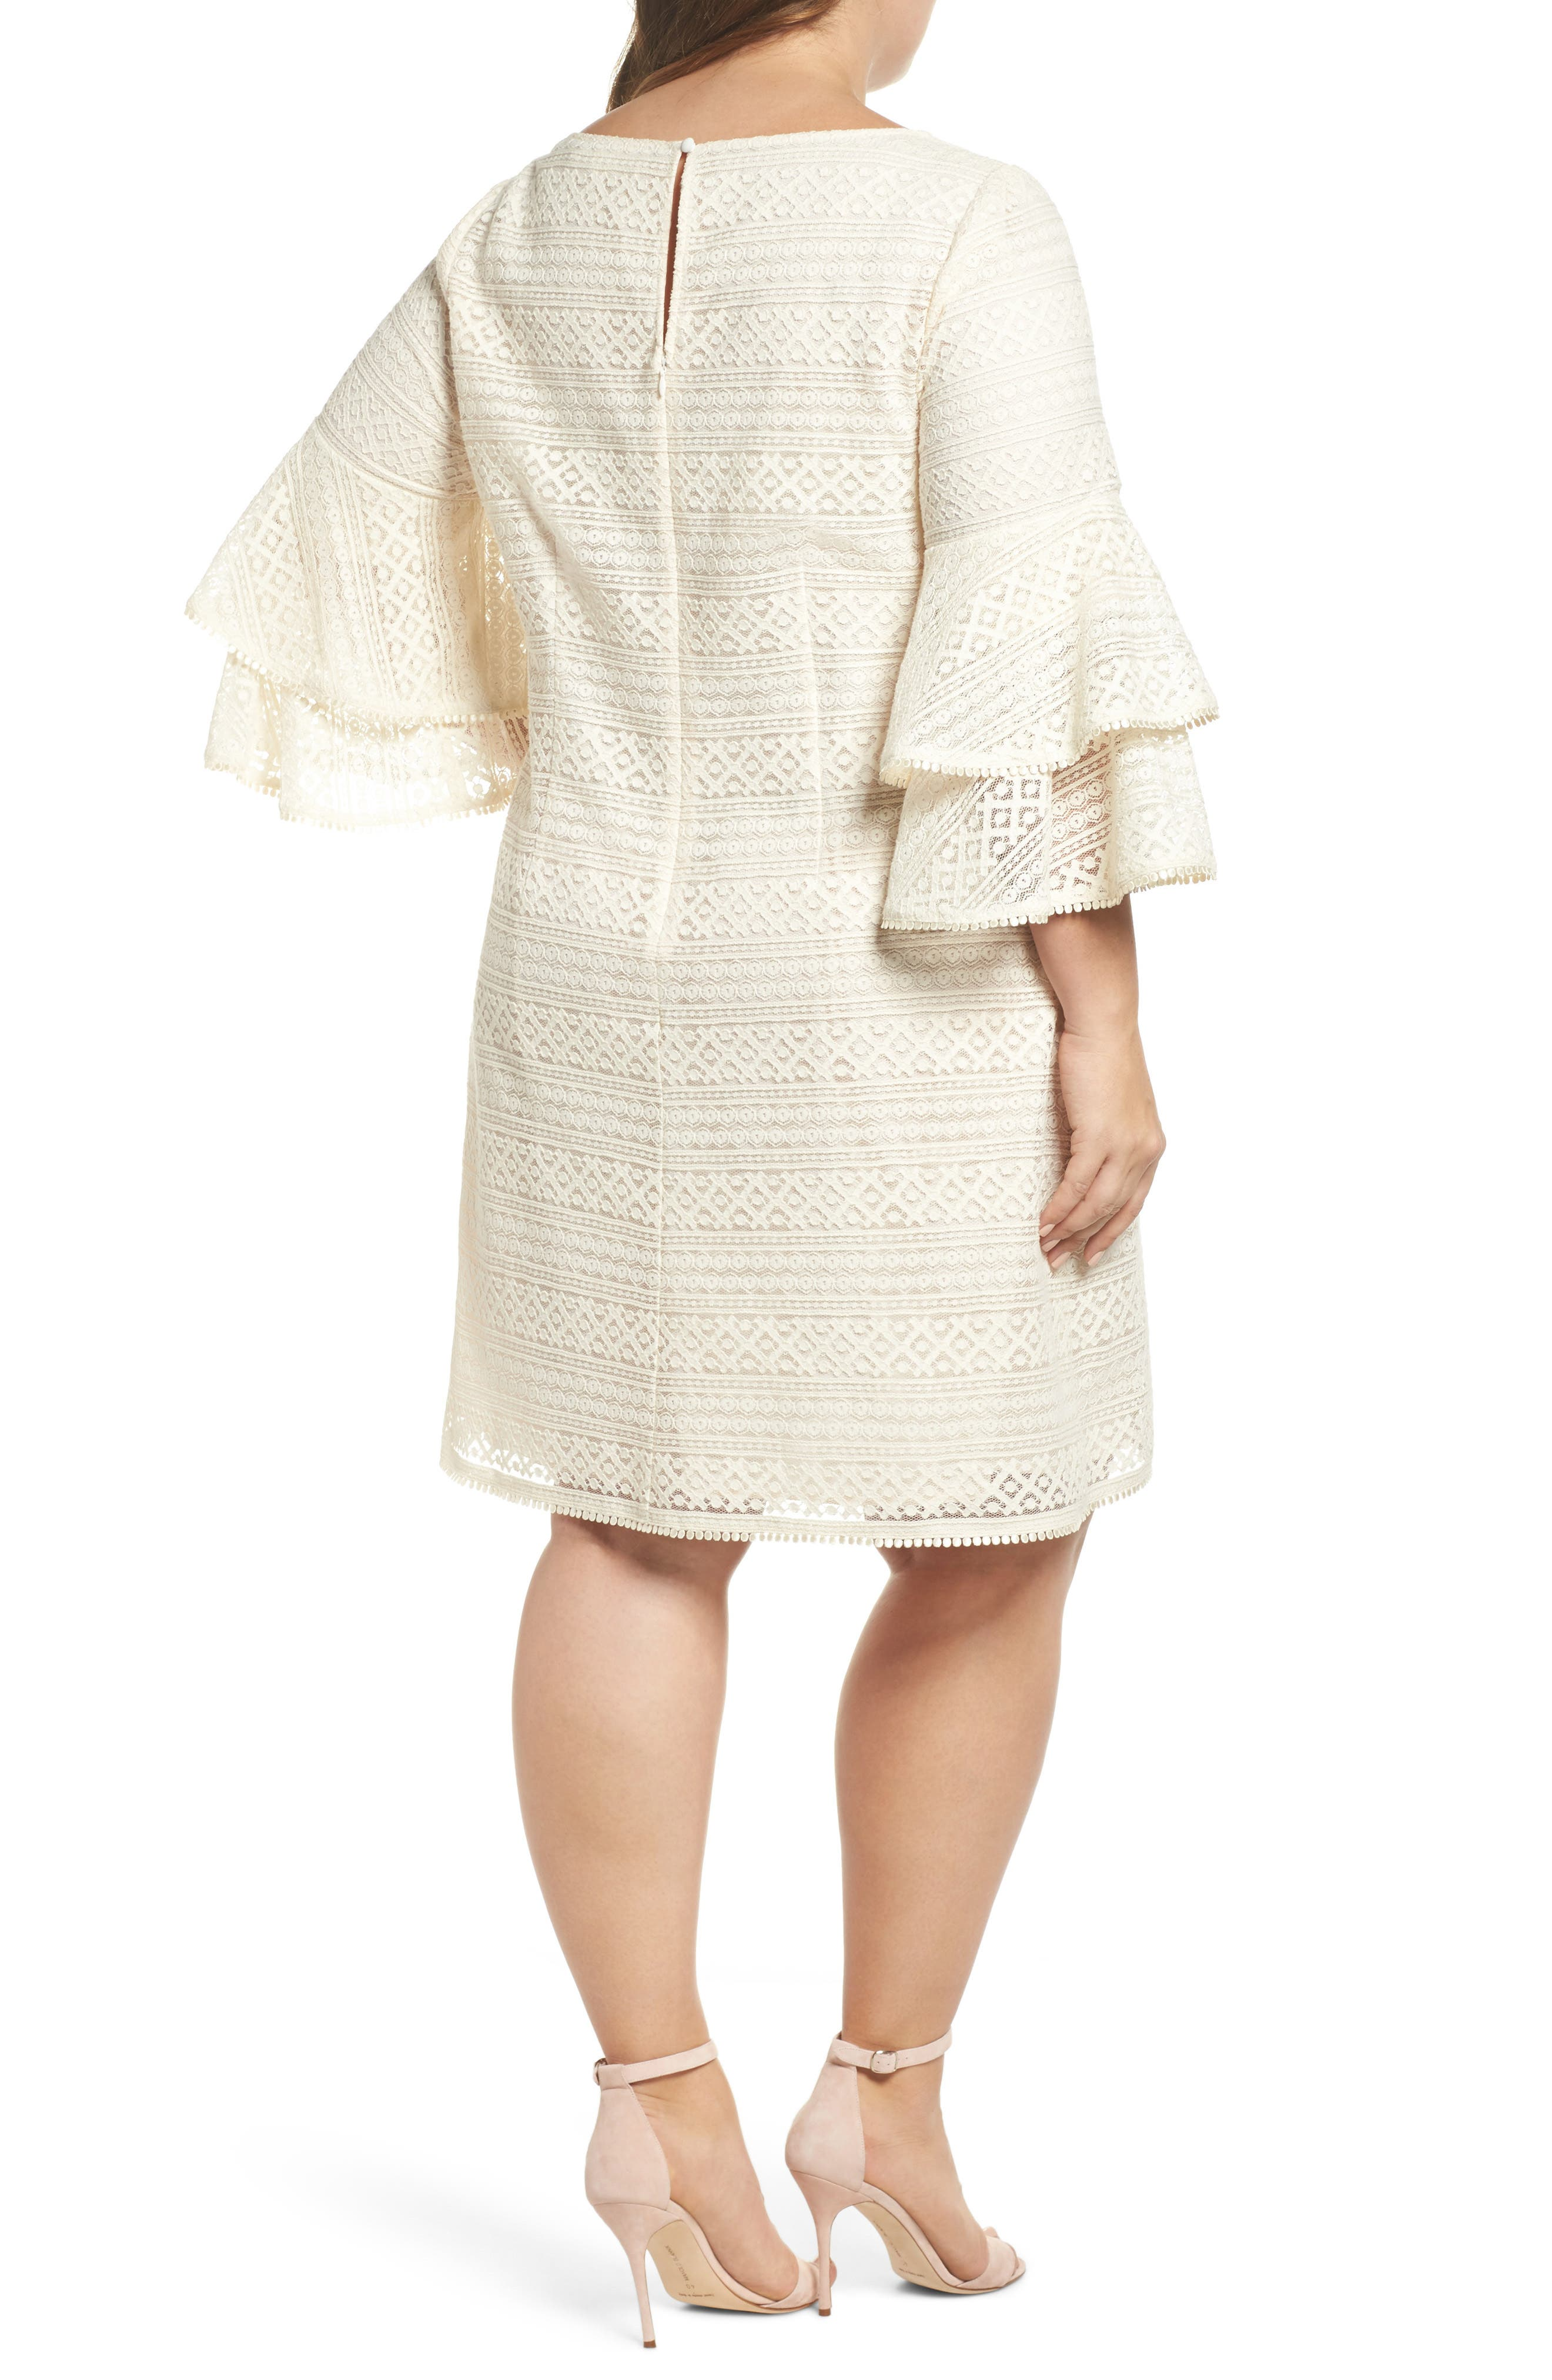 Bell Sleeve Lace Shift Dress,                             Alternate thumbnail 2, color,                             900